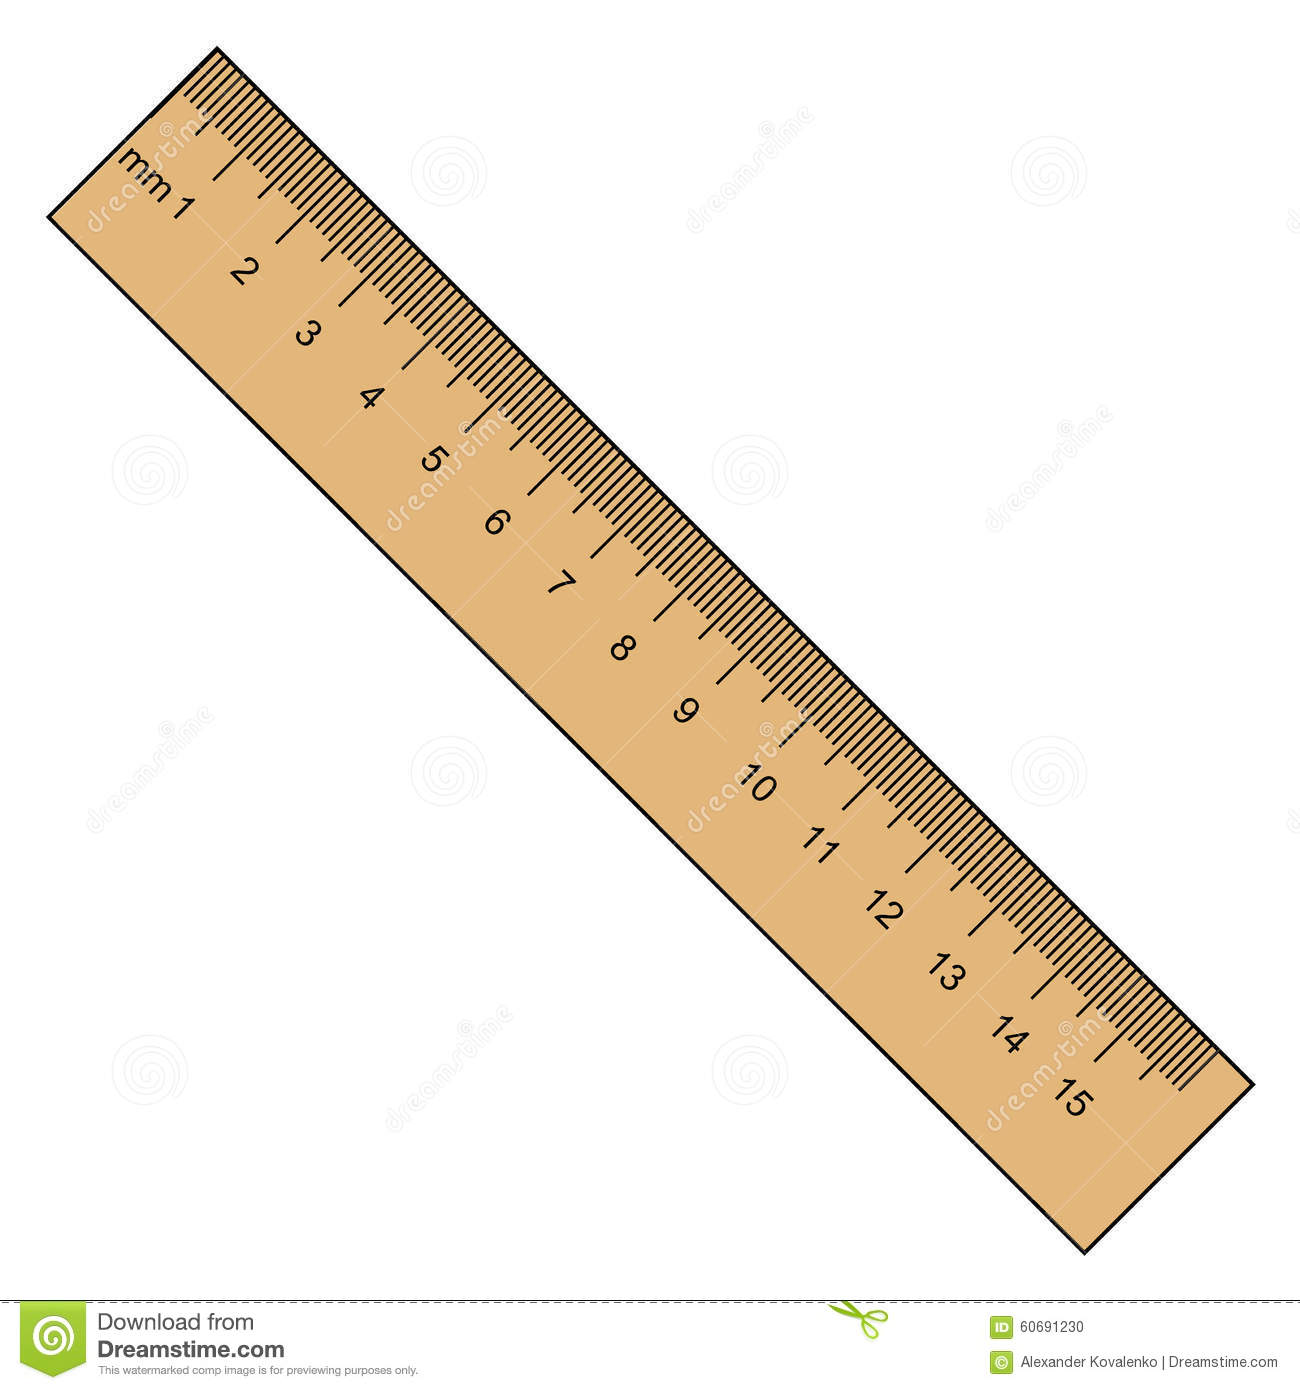 worksheet Ruler Measurement ruler instrument of measurement stock illustration image 60691230 measurement